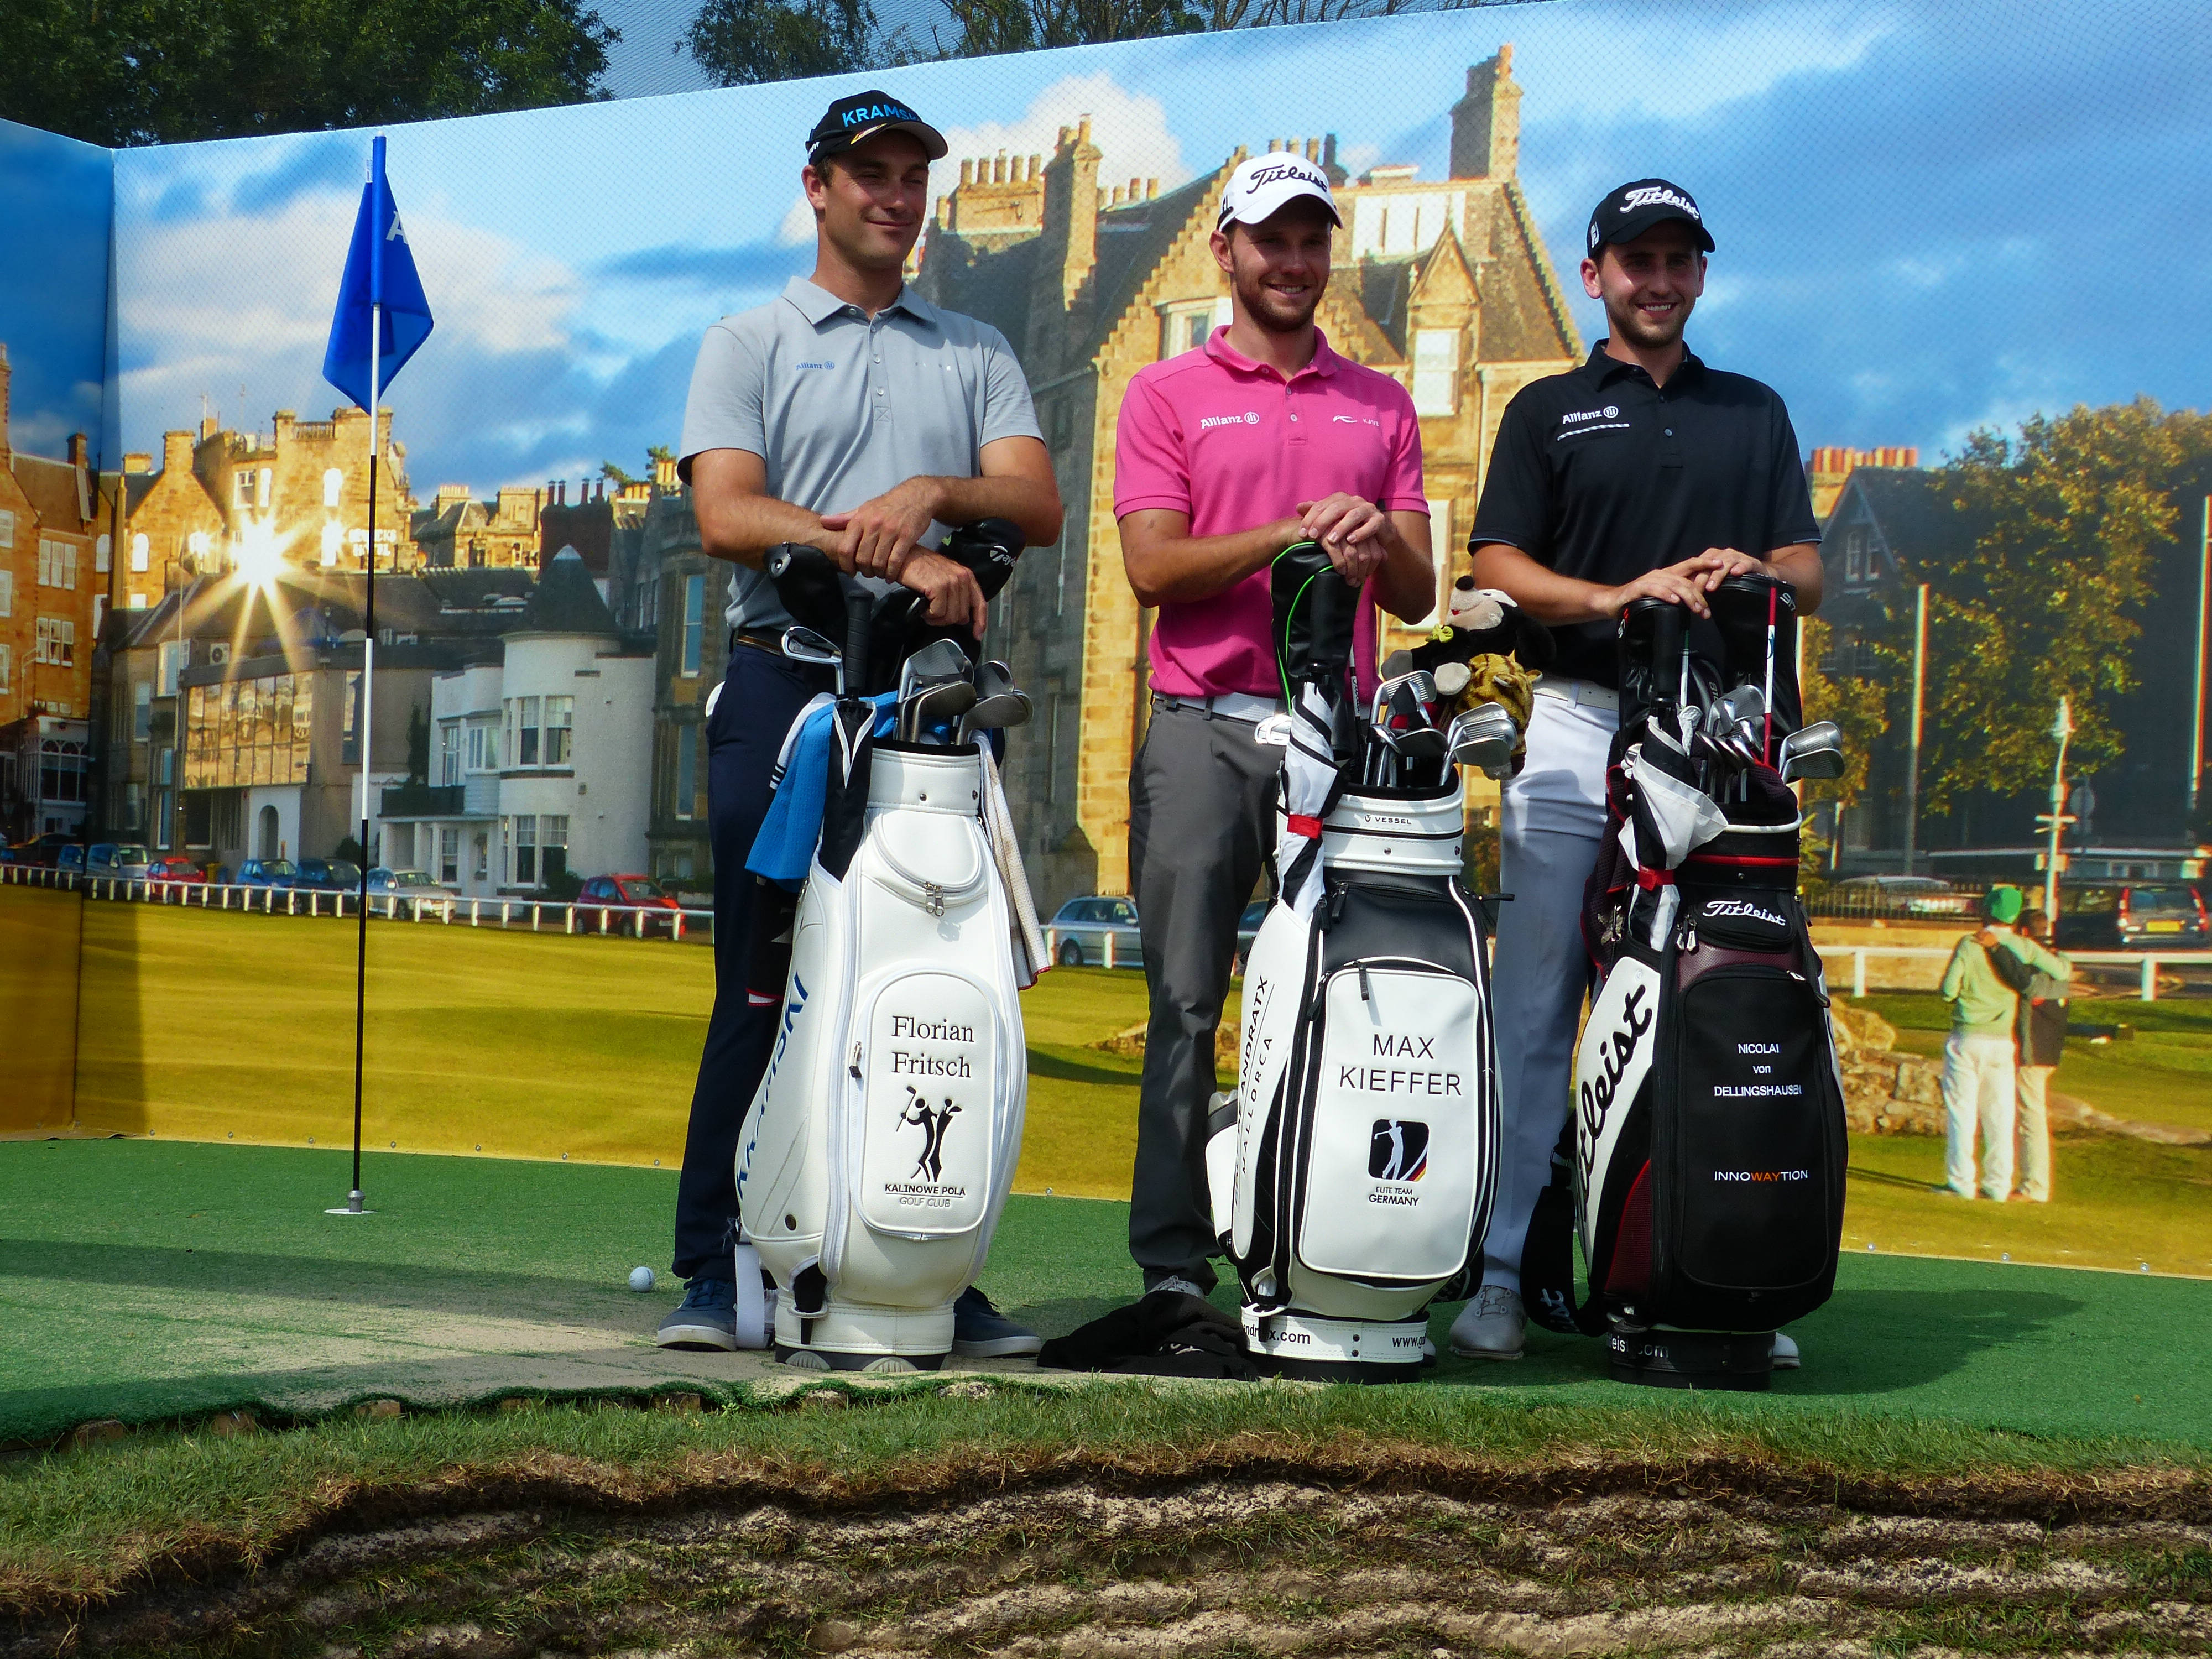 florian-fritsch-maximlilan-kieffer-nicolai-von-dellingshausen-allianz-bmw-international-open